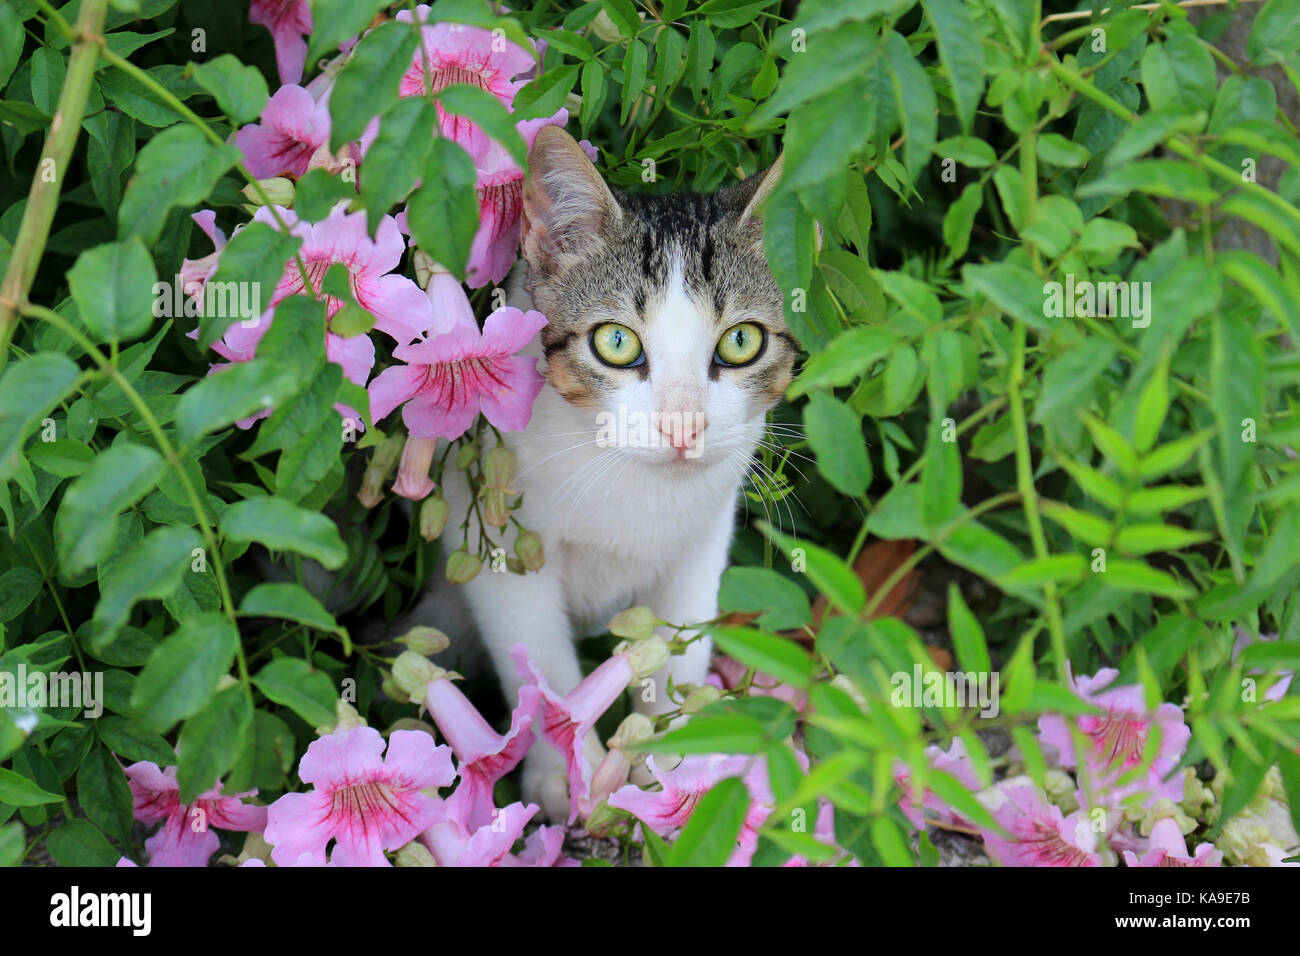 domestic cat, black tabby white, sitting between pink flowers Stock Photo